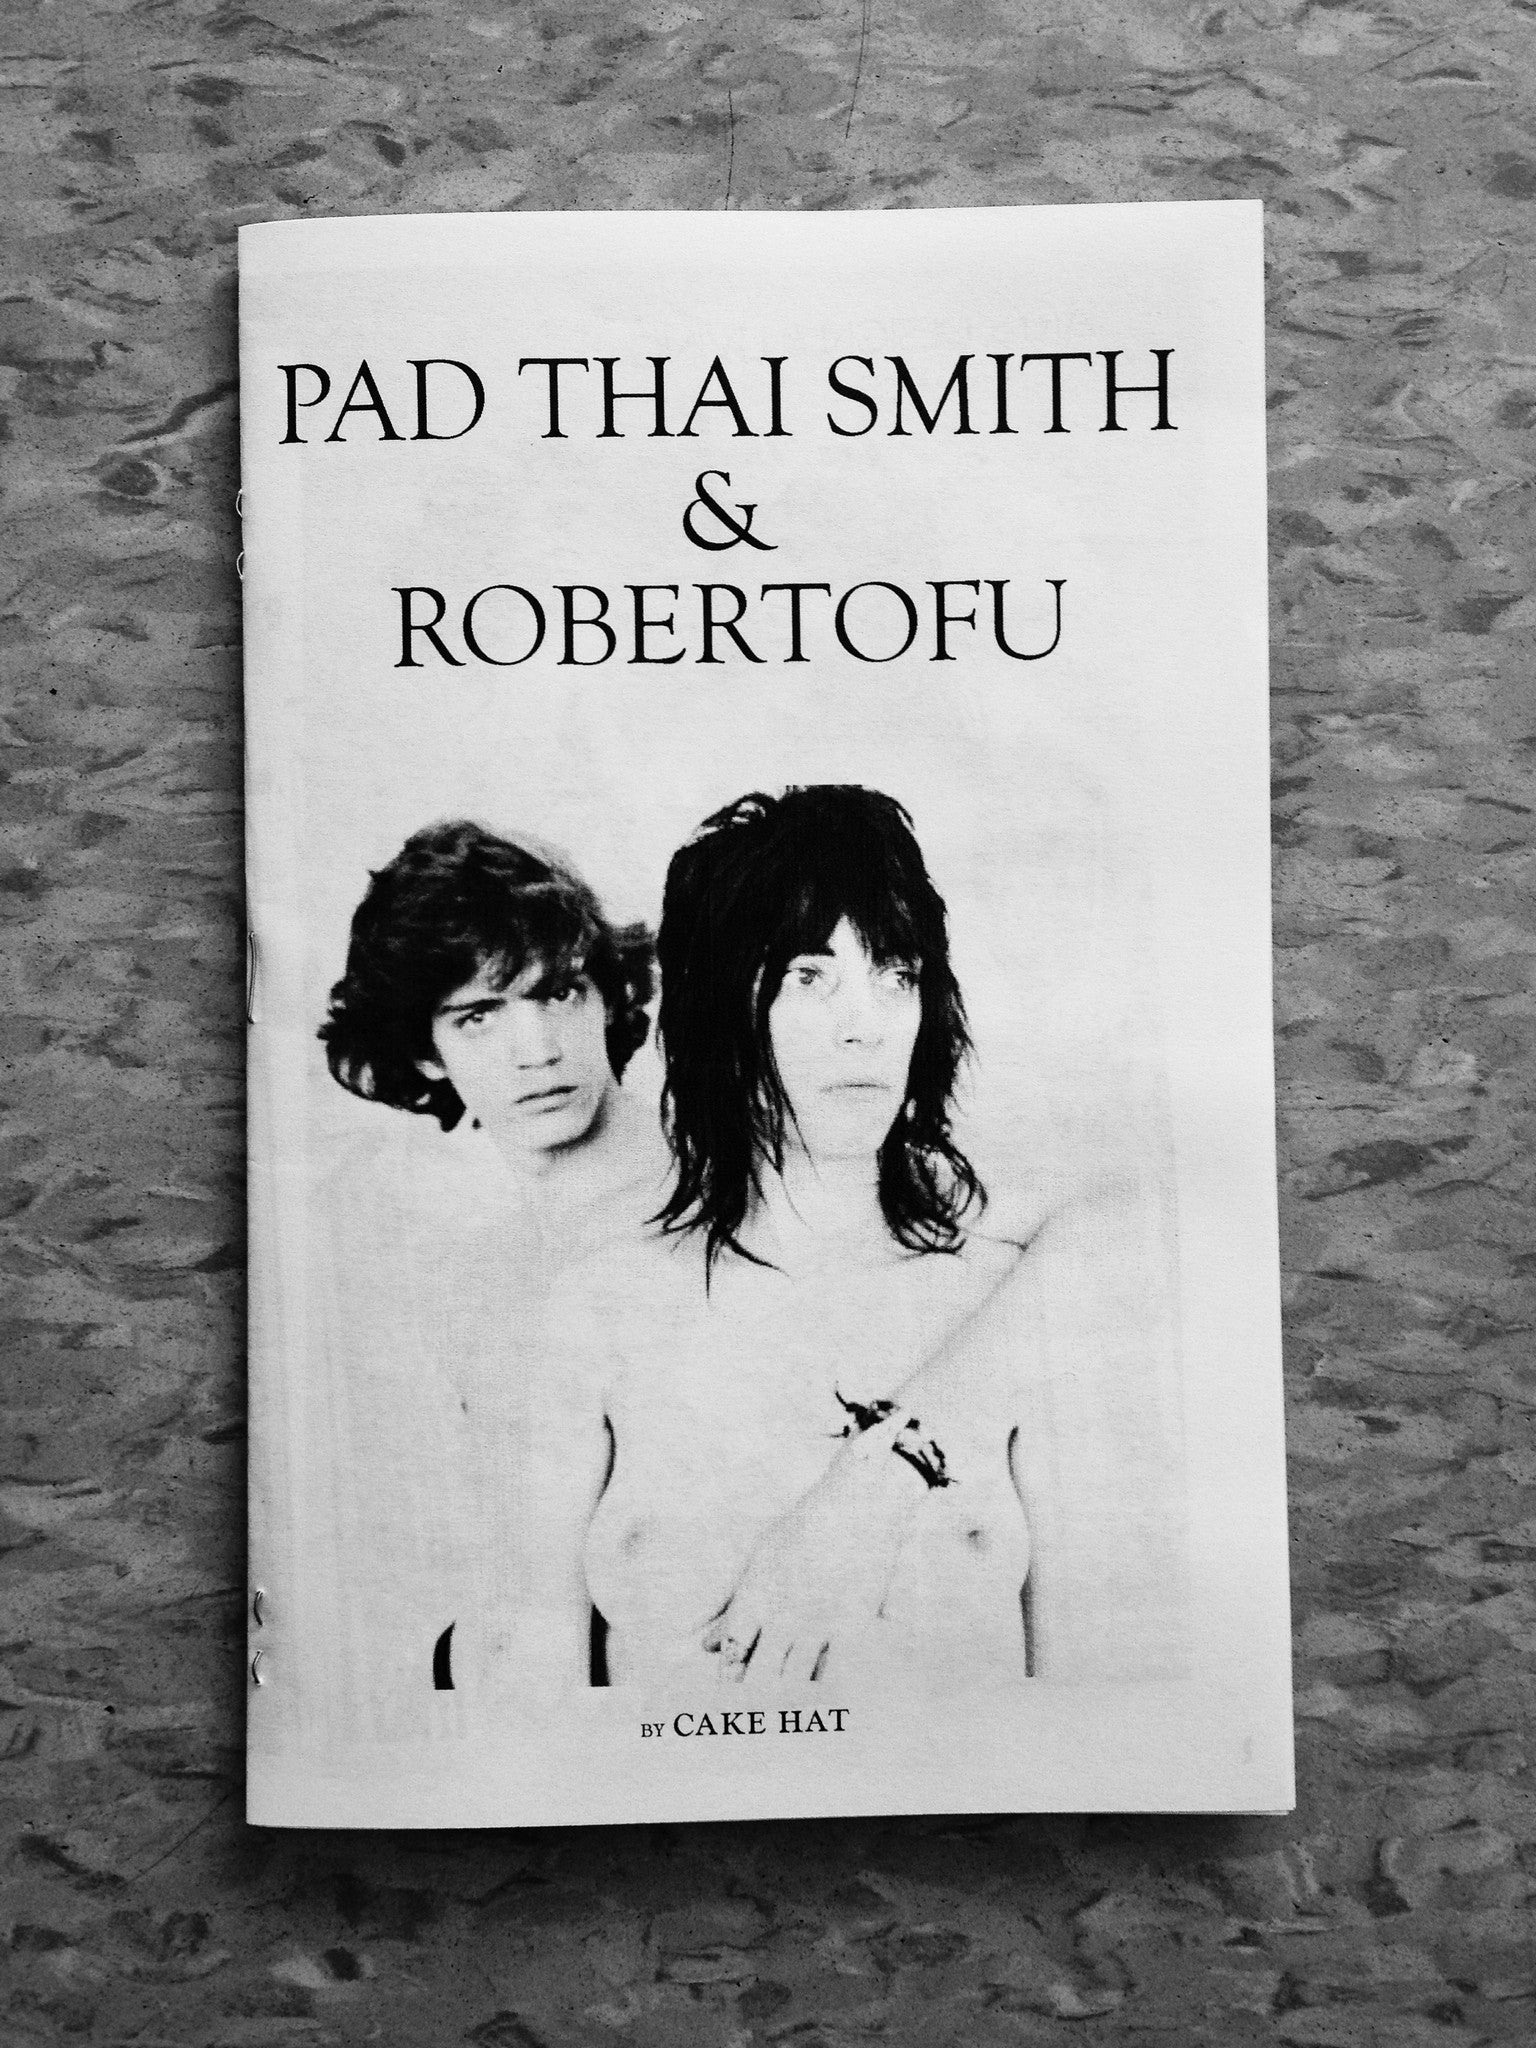 PAD THAI SMITH & ROBERTOFU